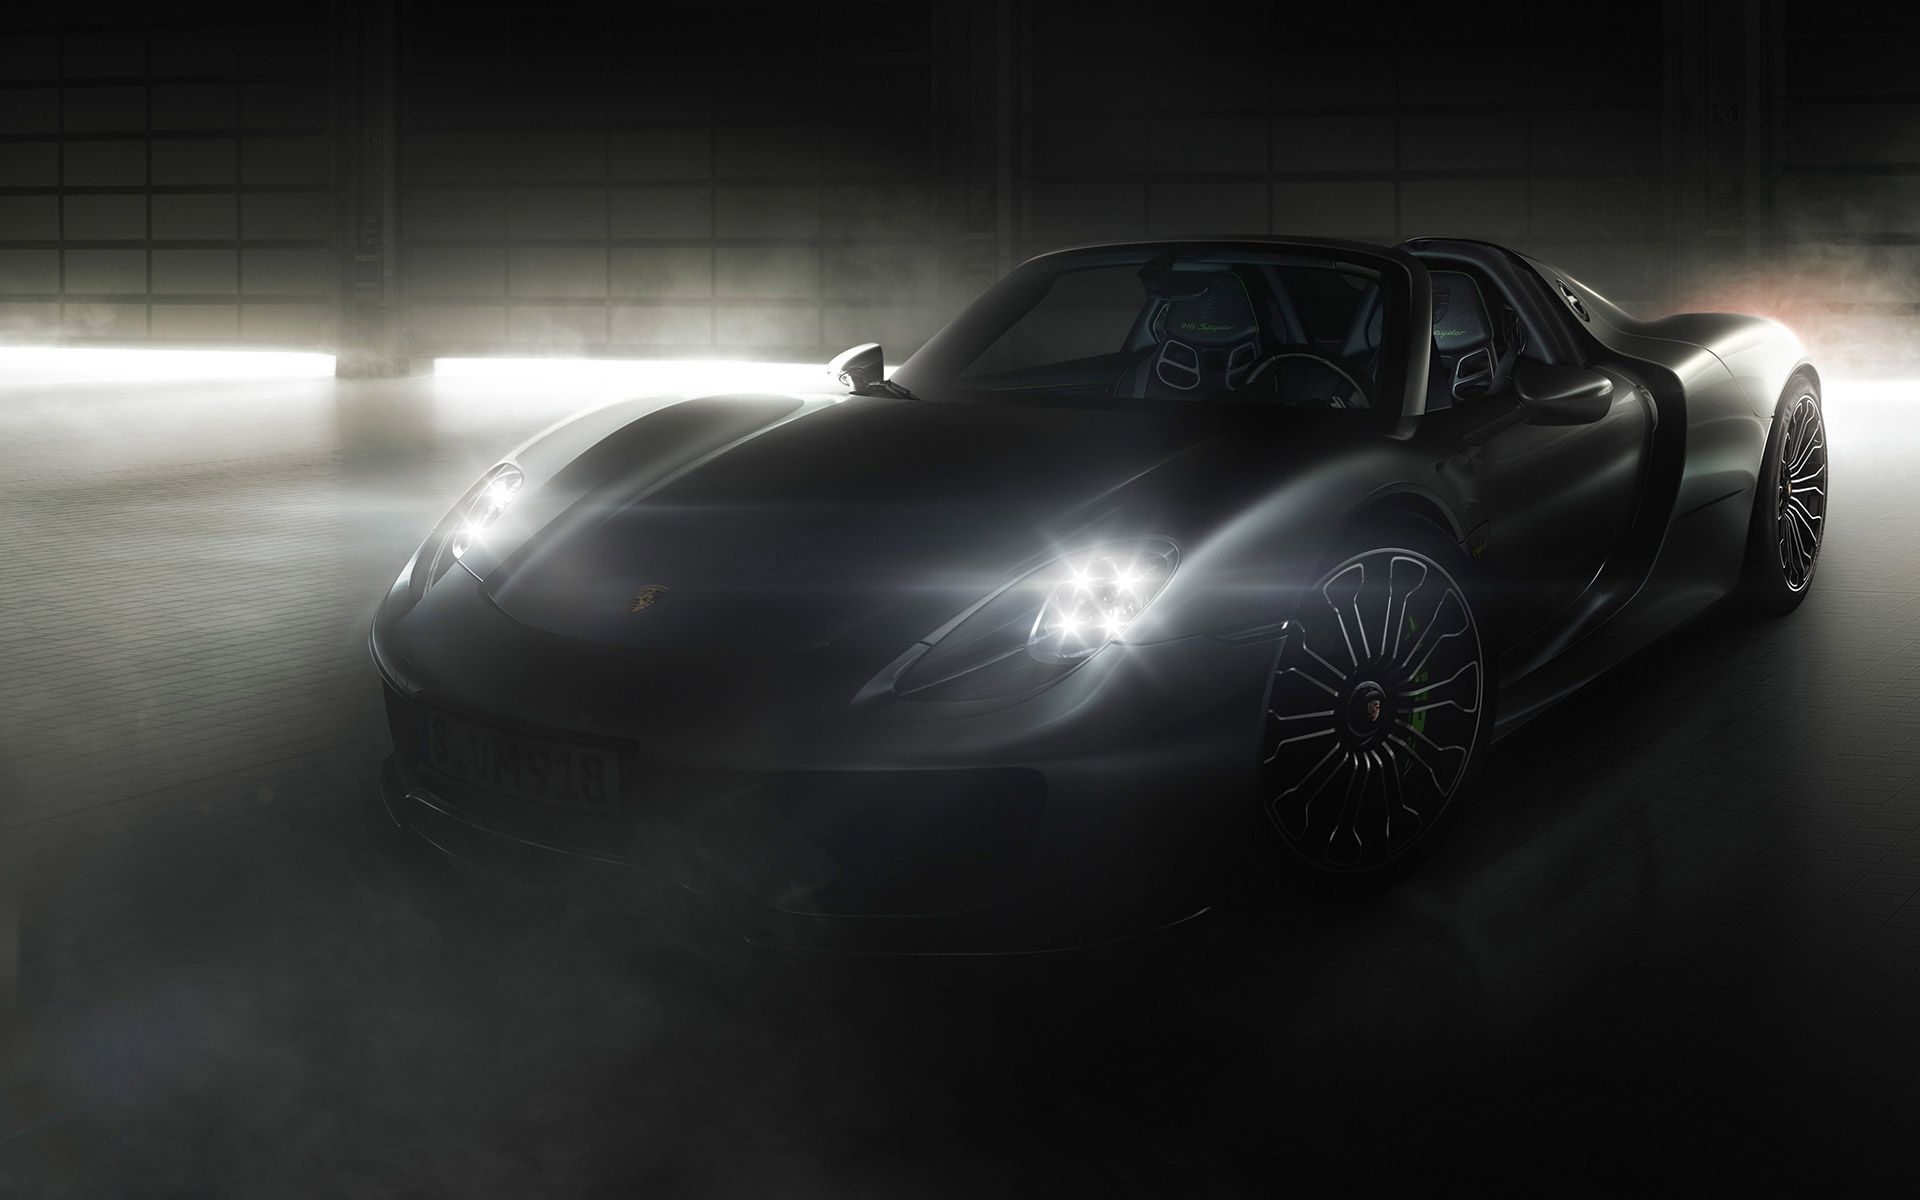 2015 porsche 918 spyder black wallpapers hd httpcarwallspapercom - Porsche 918 Spyder Wallpaper